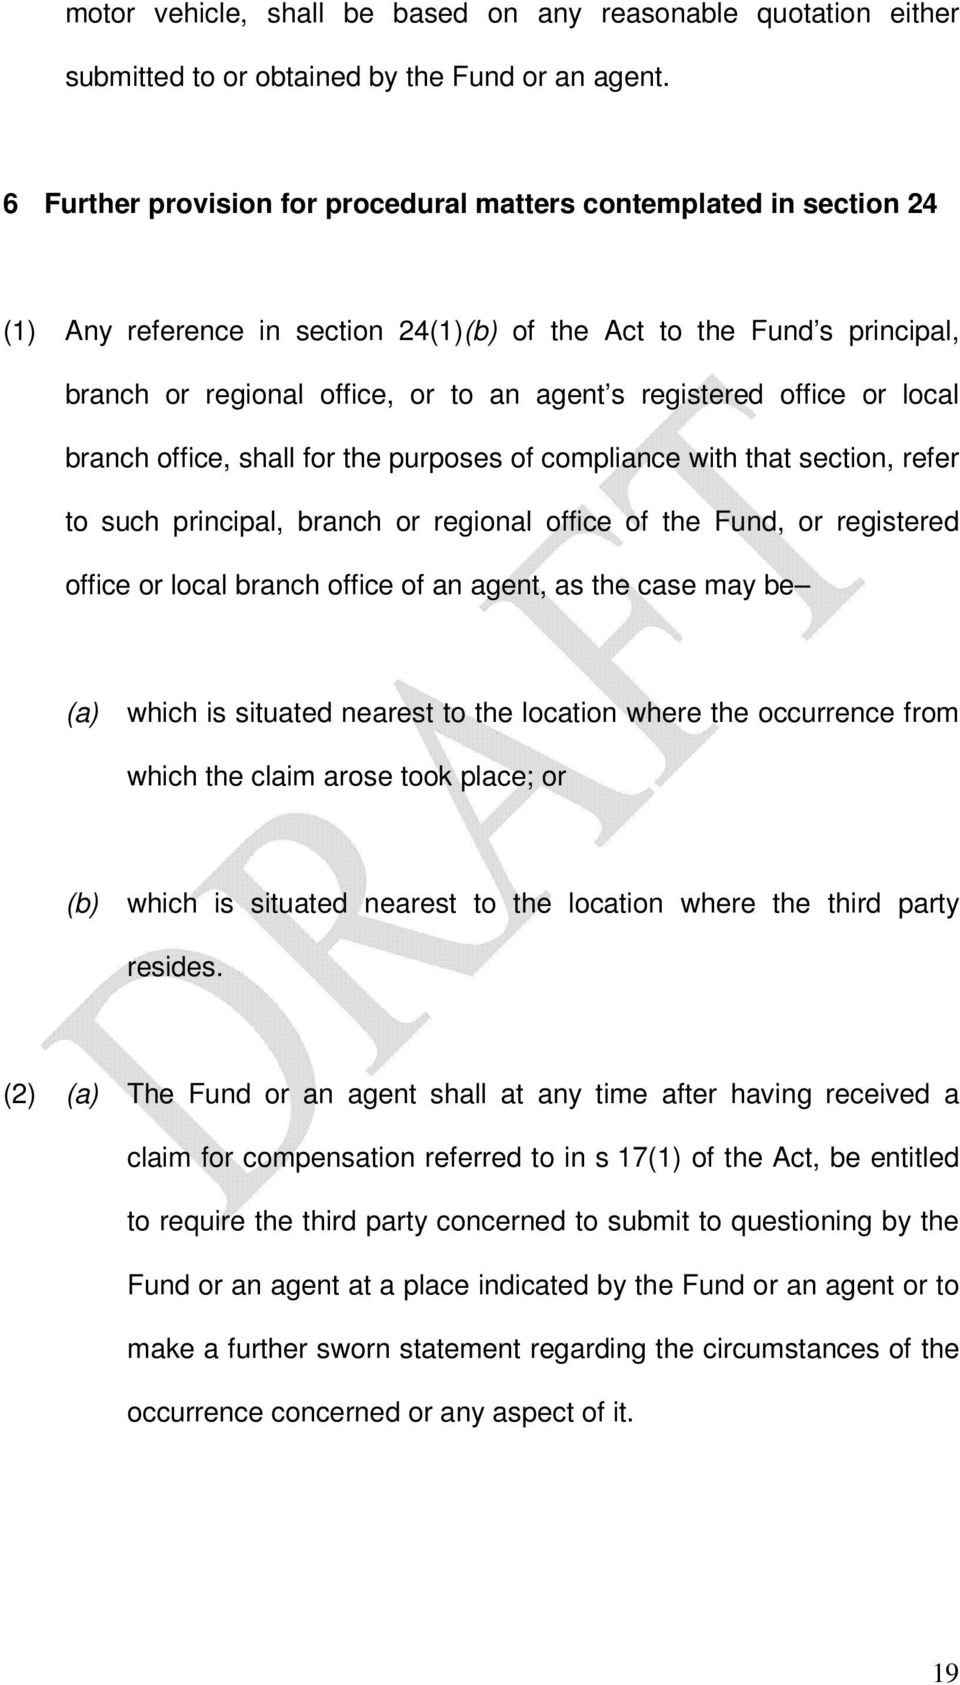 office or local branch office, shall for the purposes of compliance with that section, refer to such principal, branch or regional office of the Fund, or registered office or local branch office of